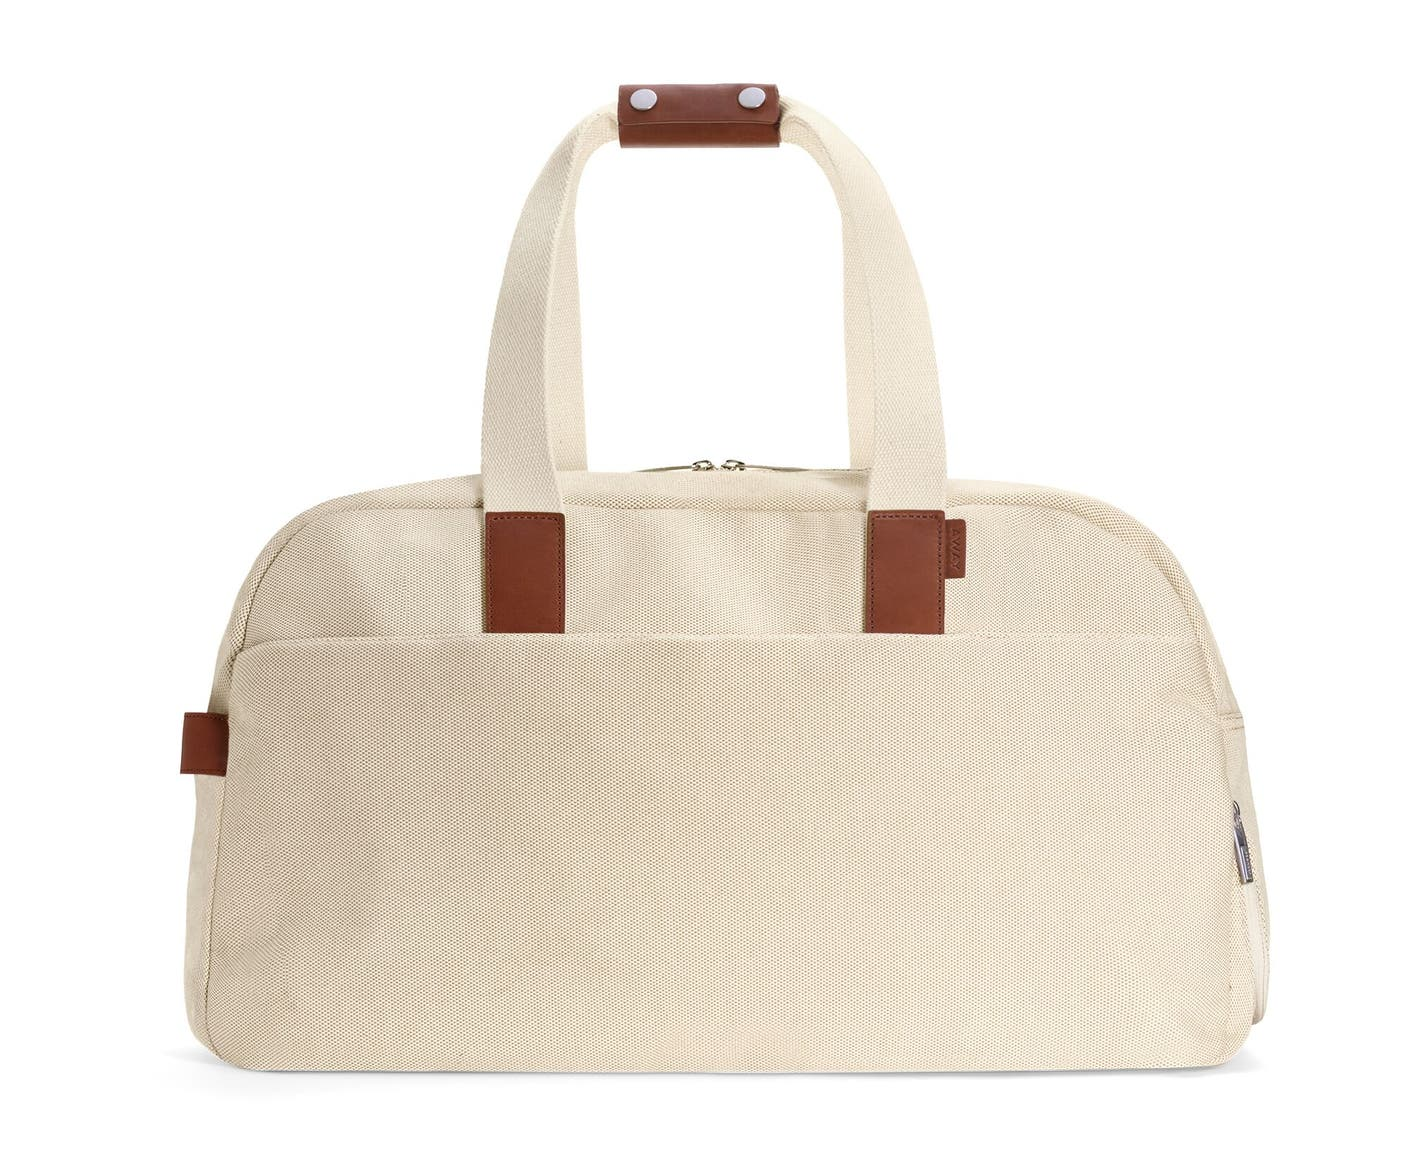 The Weekender in Natural canvas